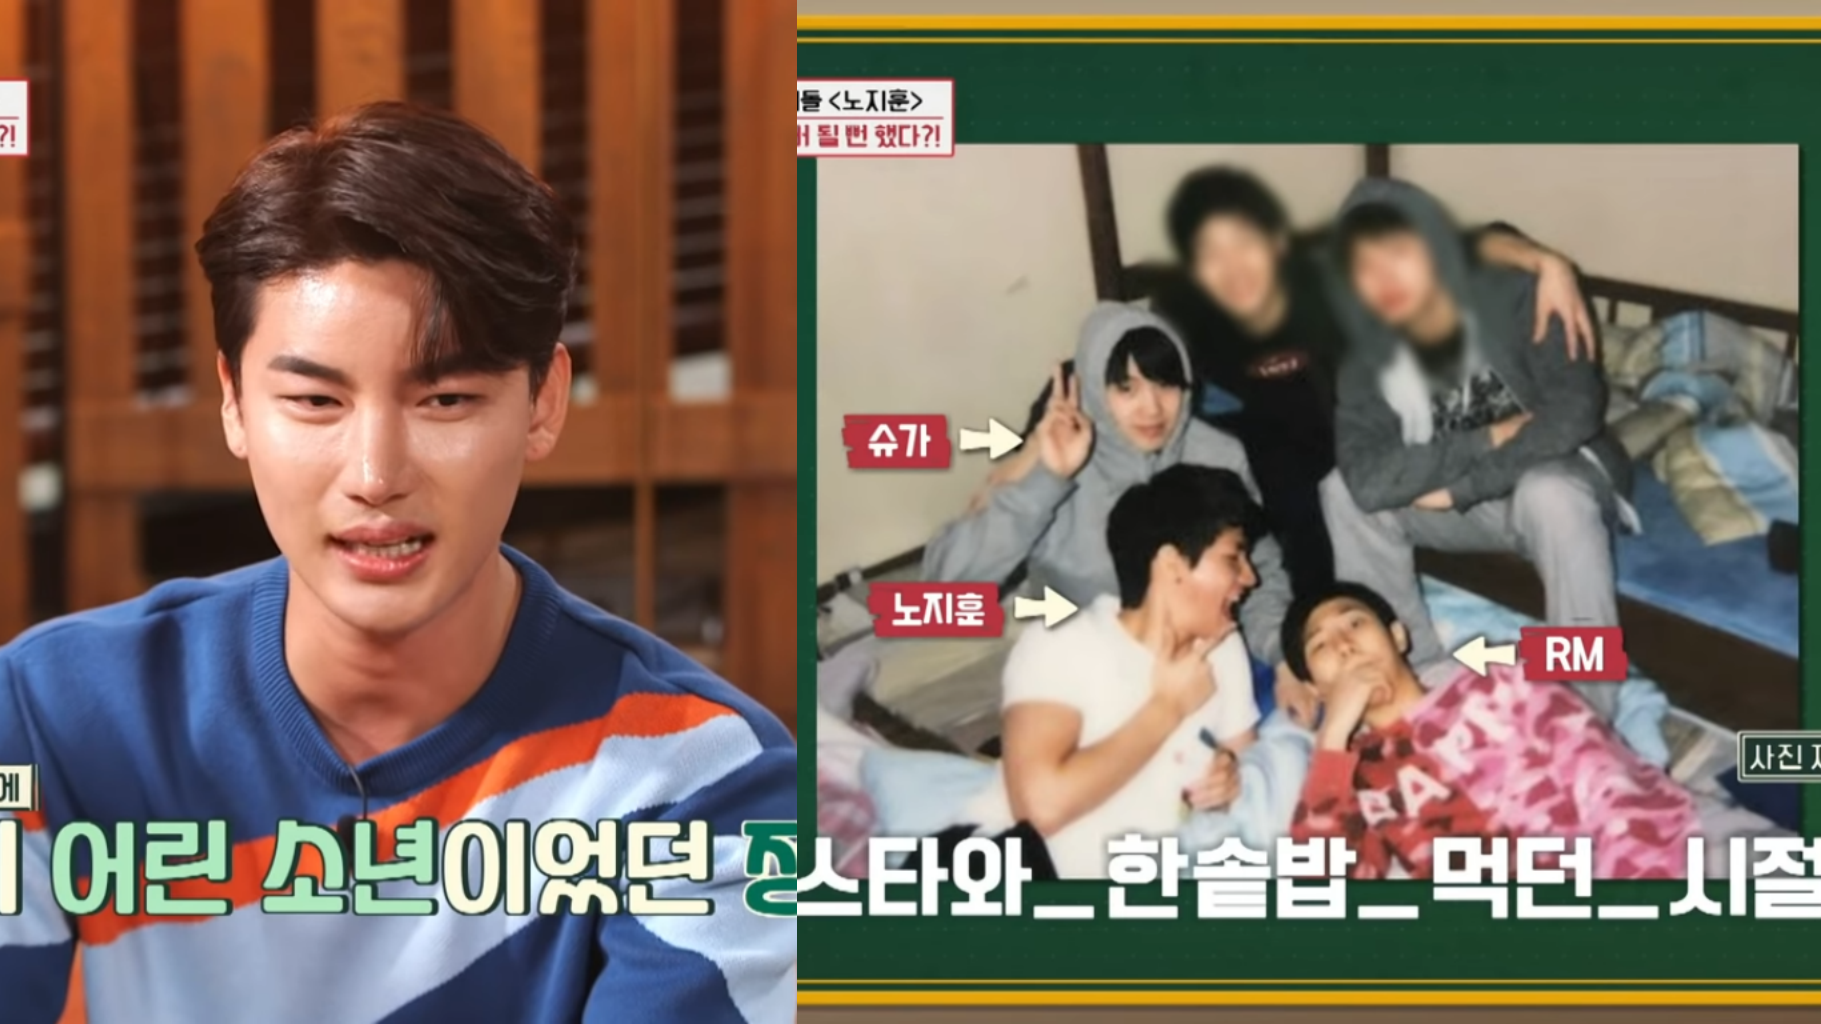 Noh Ji Hoon Reminisces About Facing a Hard Time Until When He Lived with BTS